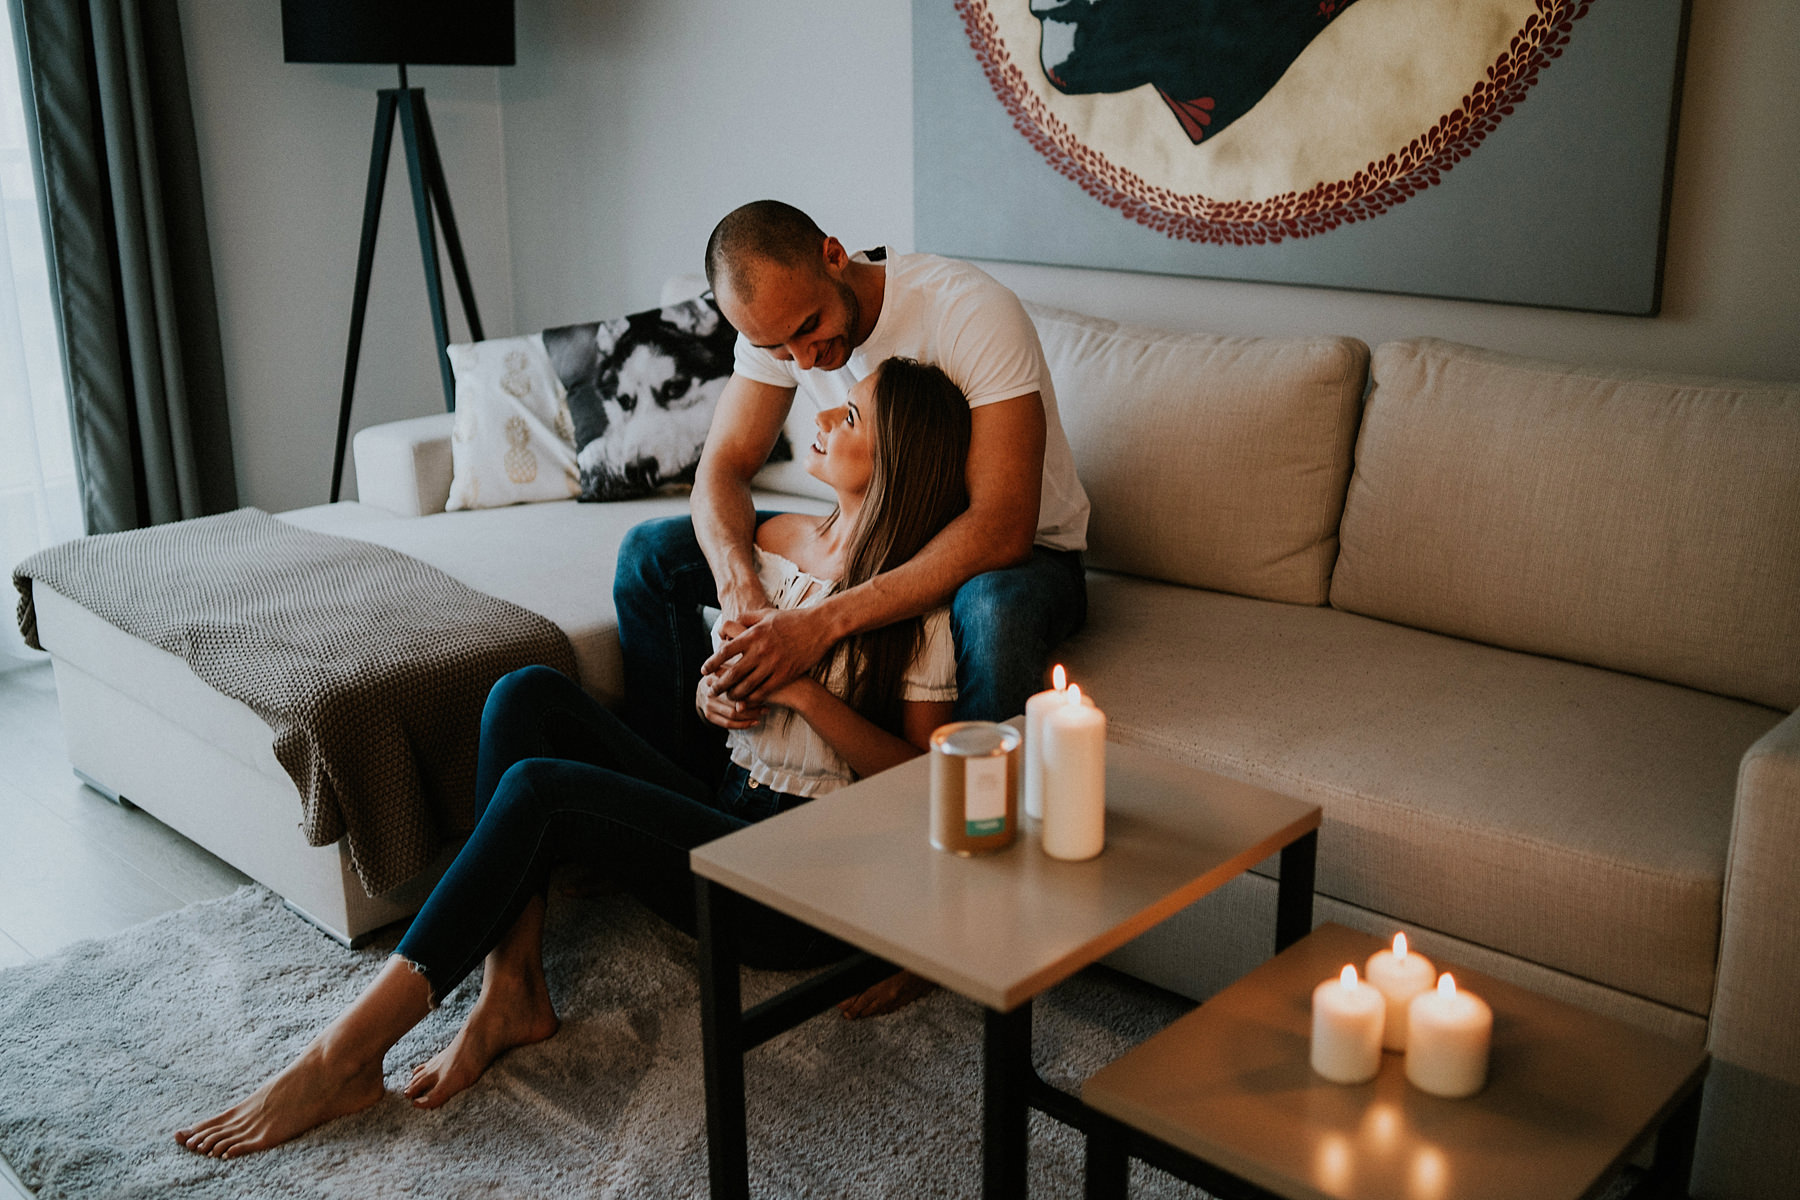 Intimate photo session in an apartment in Krakow